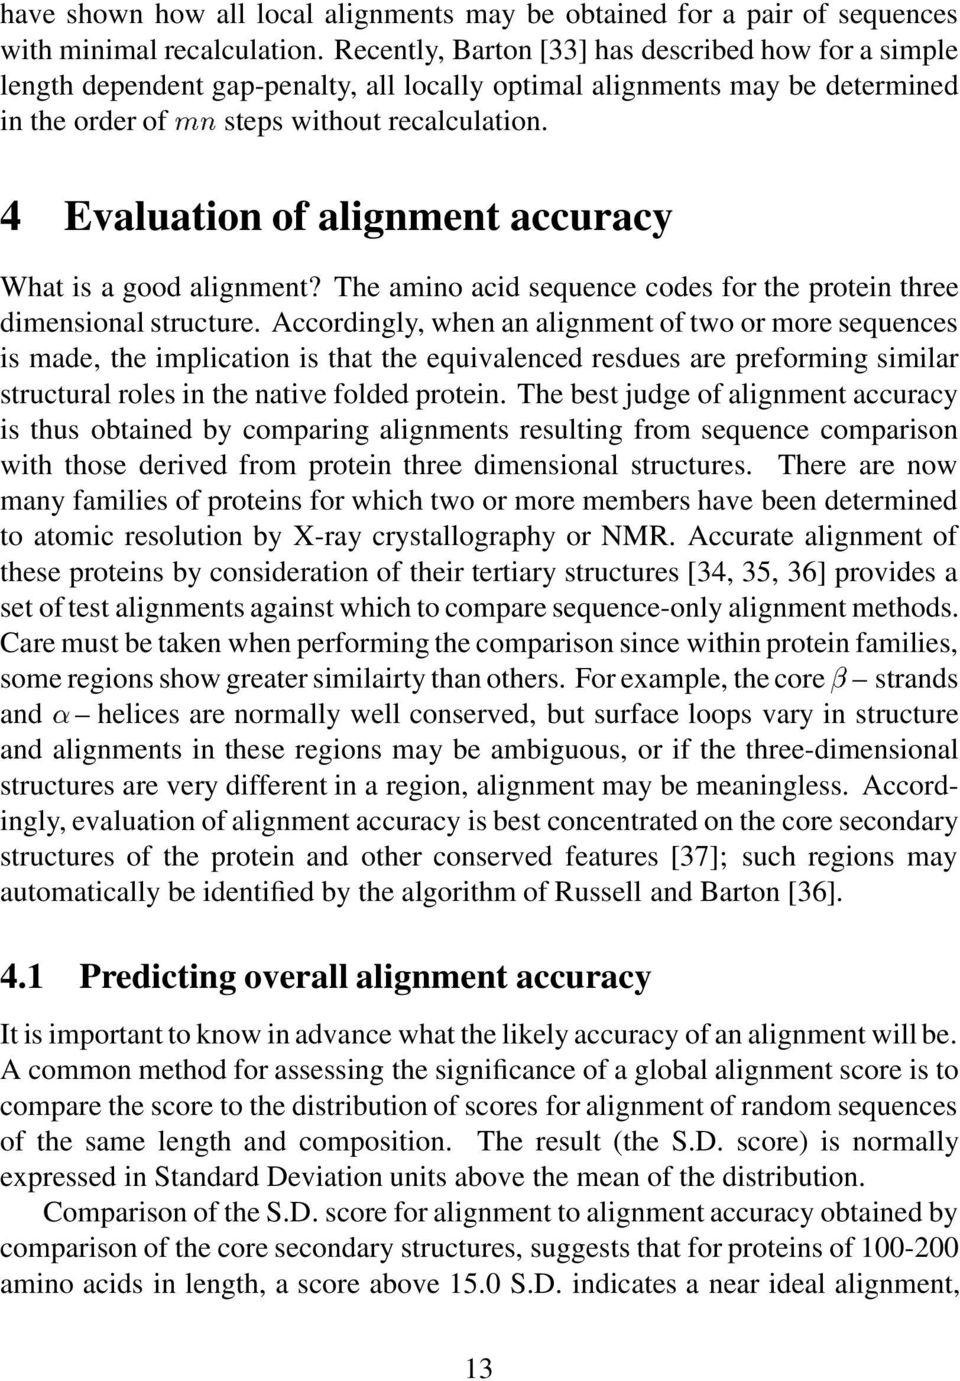 4 Evaluation of alignment accuracy What is a good alignment? The amino acid sequence codes for the protein three dimensional structure.